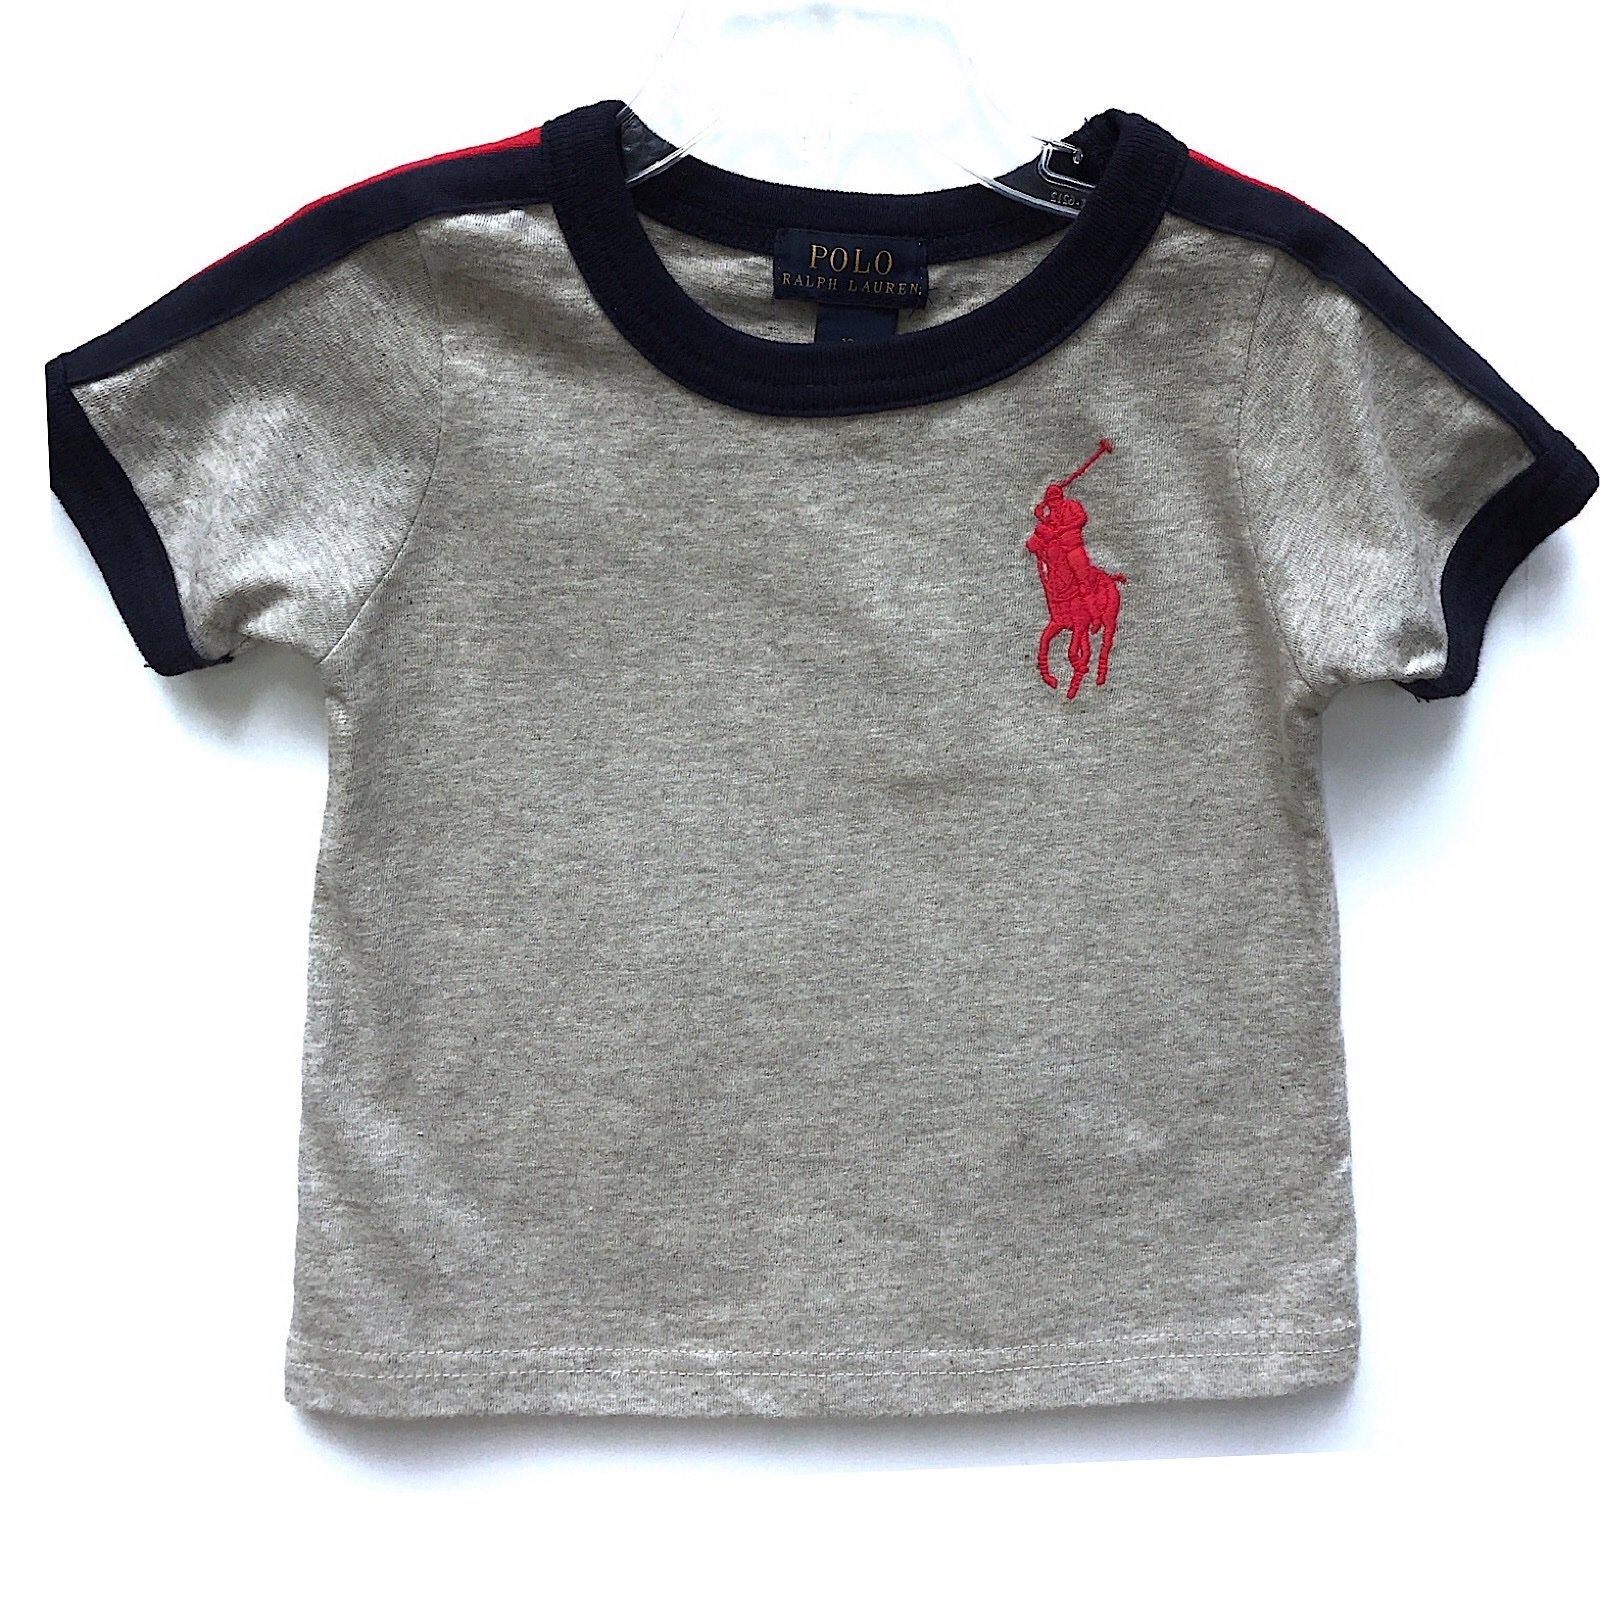 BOYS RALPH LAUREN T SHIRT  AGE 9 MONTHS SHORT SLEEVE LIGHT BLUE